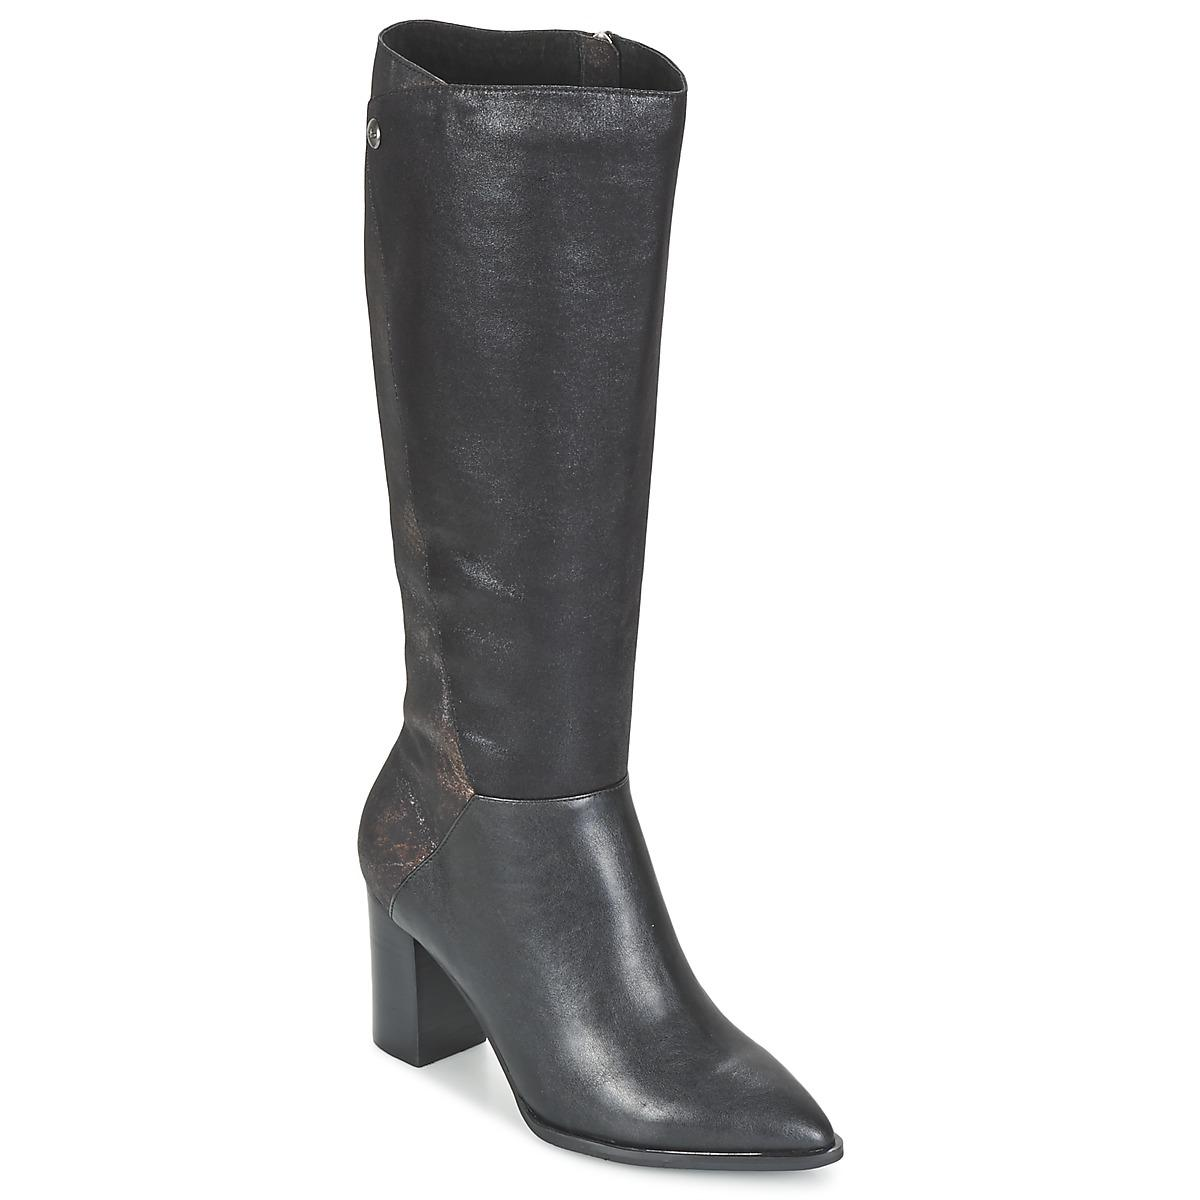 new arrivals 79a8e 3b025 les-ptites-bombes-black-Jersey-Womens-High-Boots-In-Black.jpeg